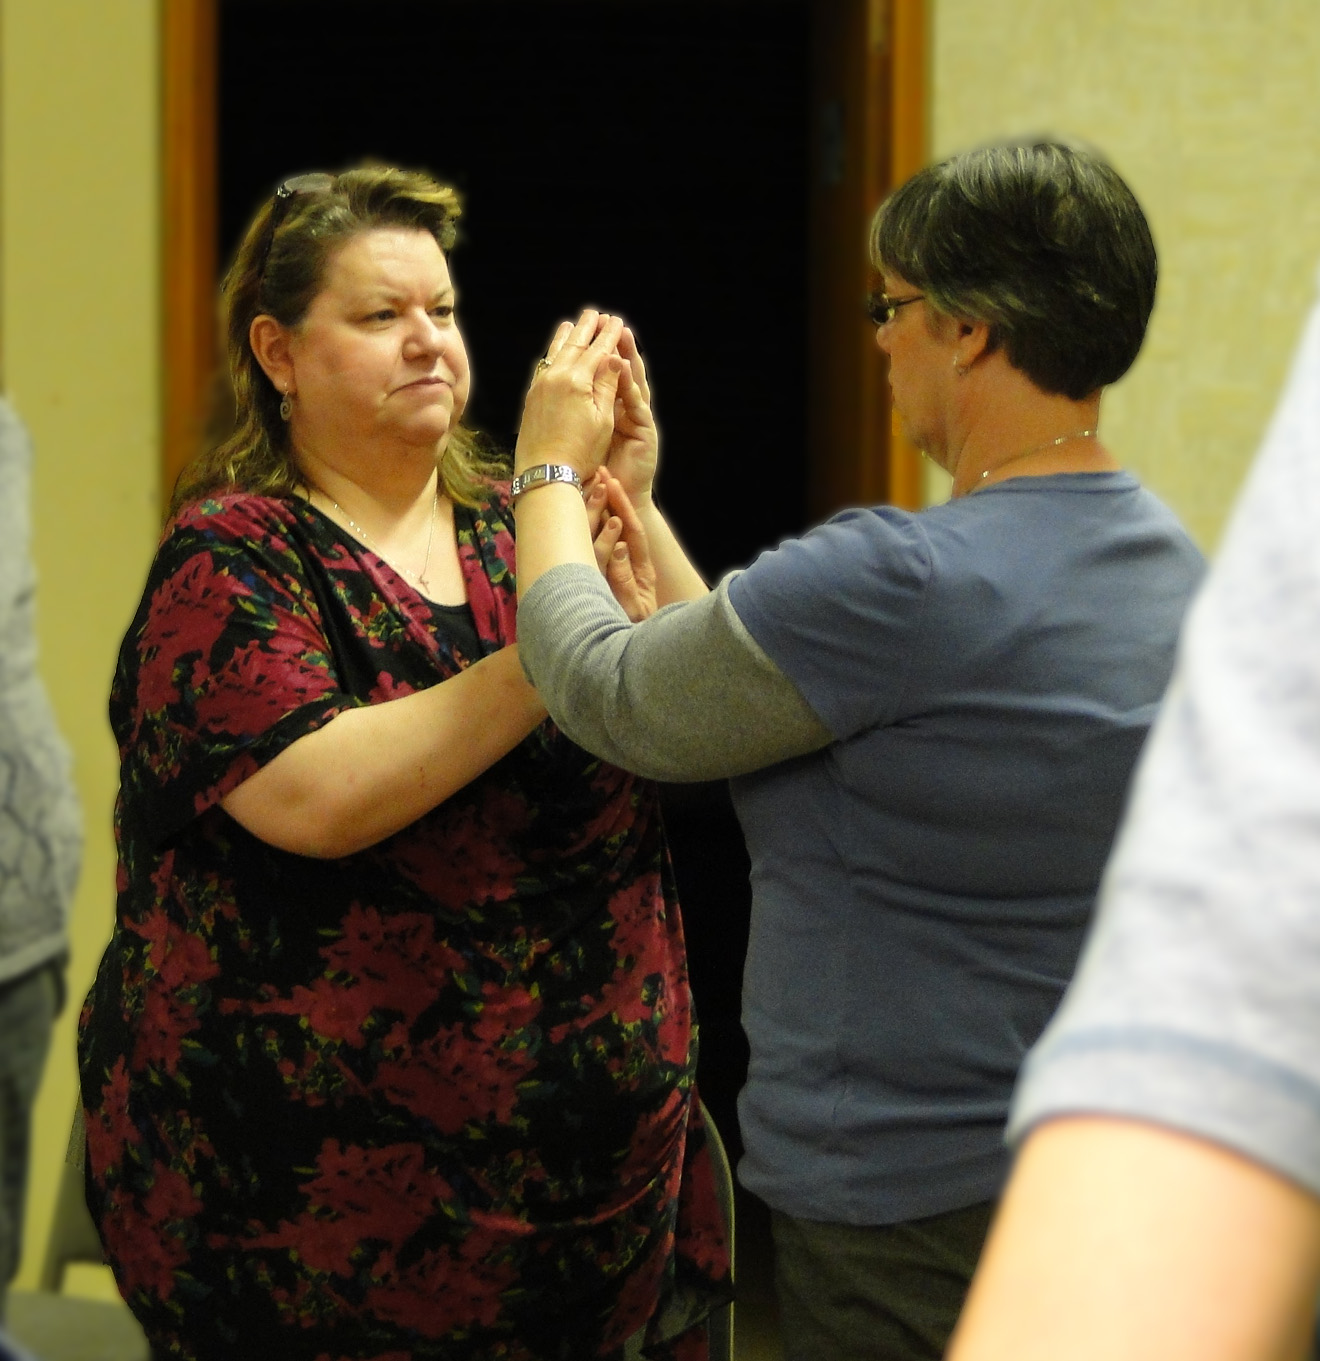 Blessing to mark the beginning of a time of learning together